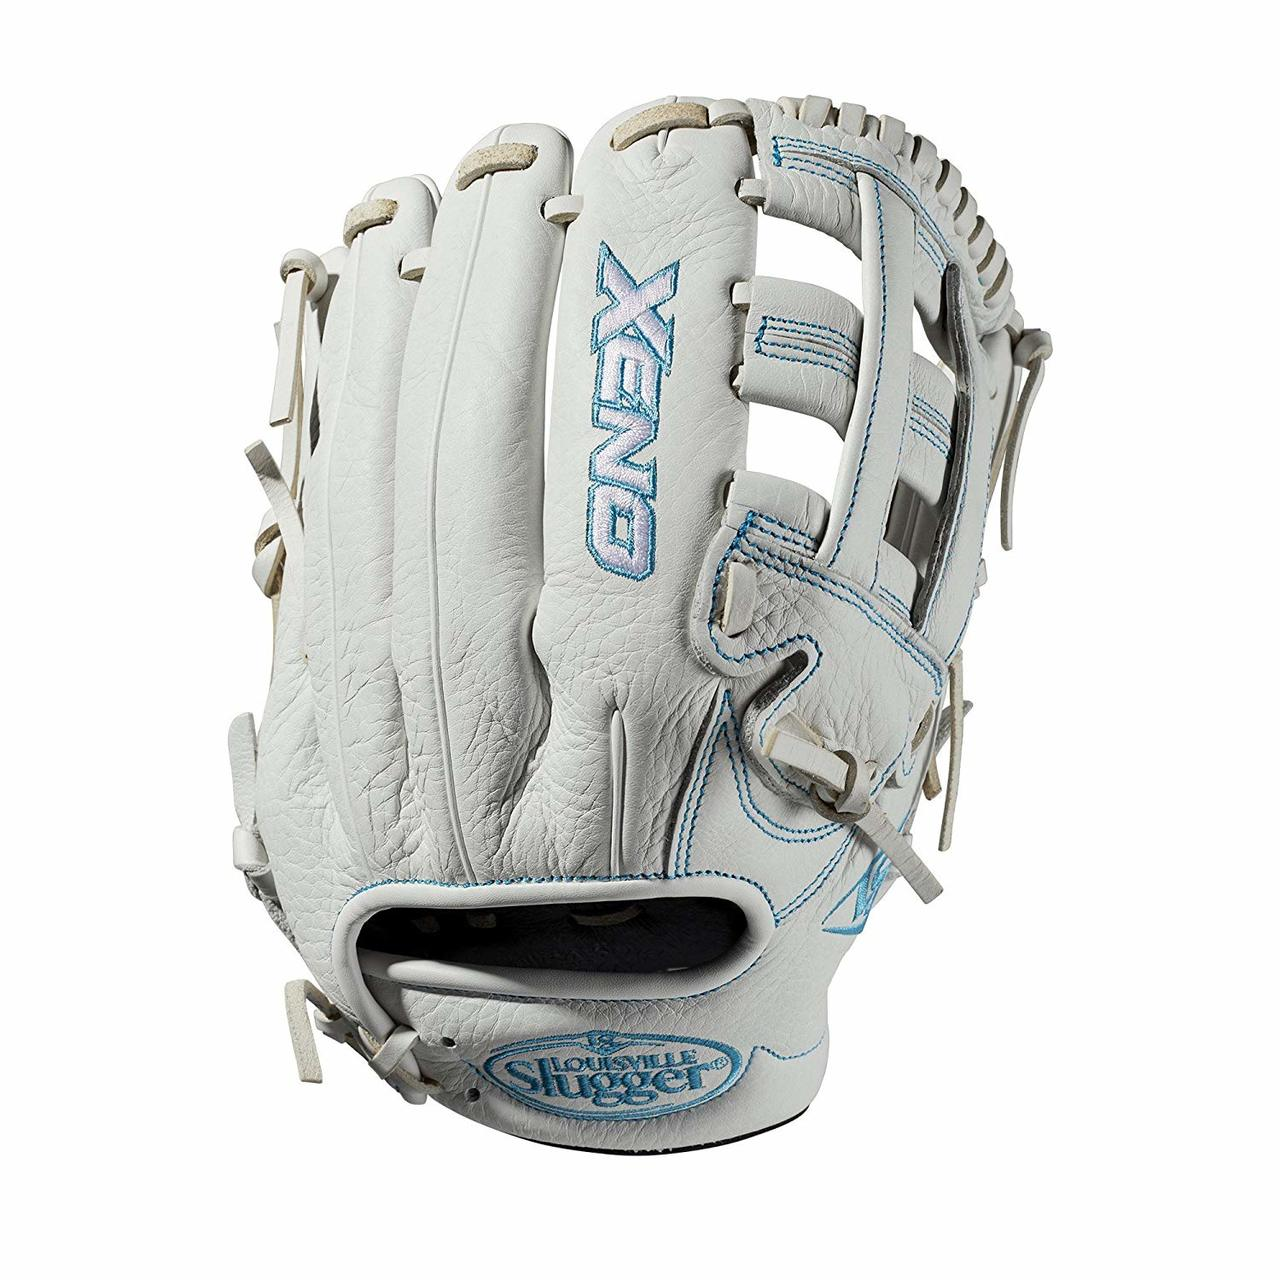 louisville-slugger-2019-xeno-fastpitch-softball-glove-11-75-right-hand-throw WTLXNRF191175-RightHandThrow Louisville 887768711344 11.75 infield glove Dual post web Memory foam wrist lining White